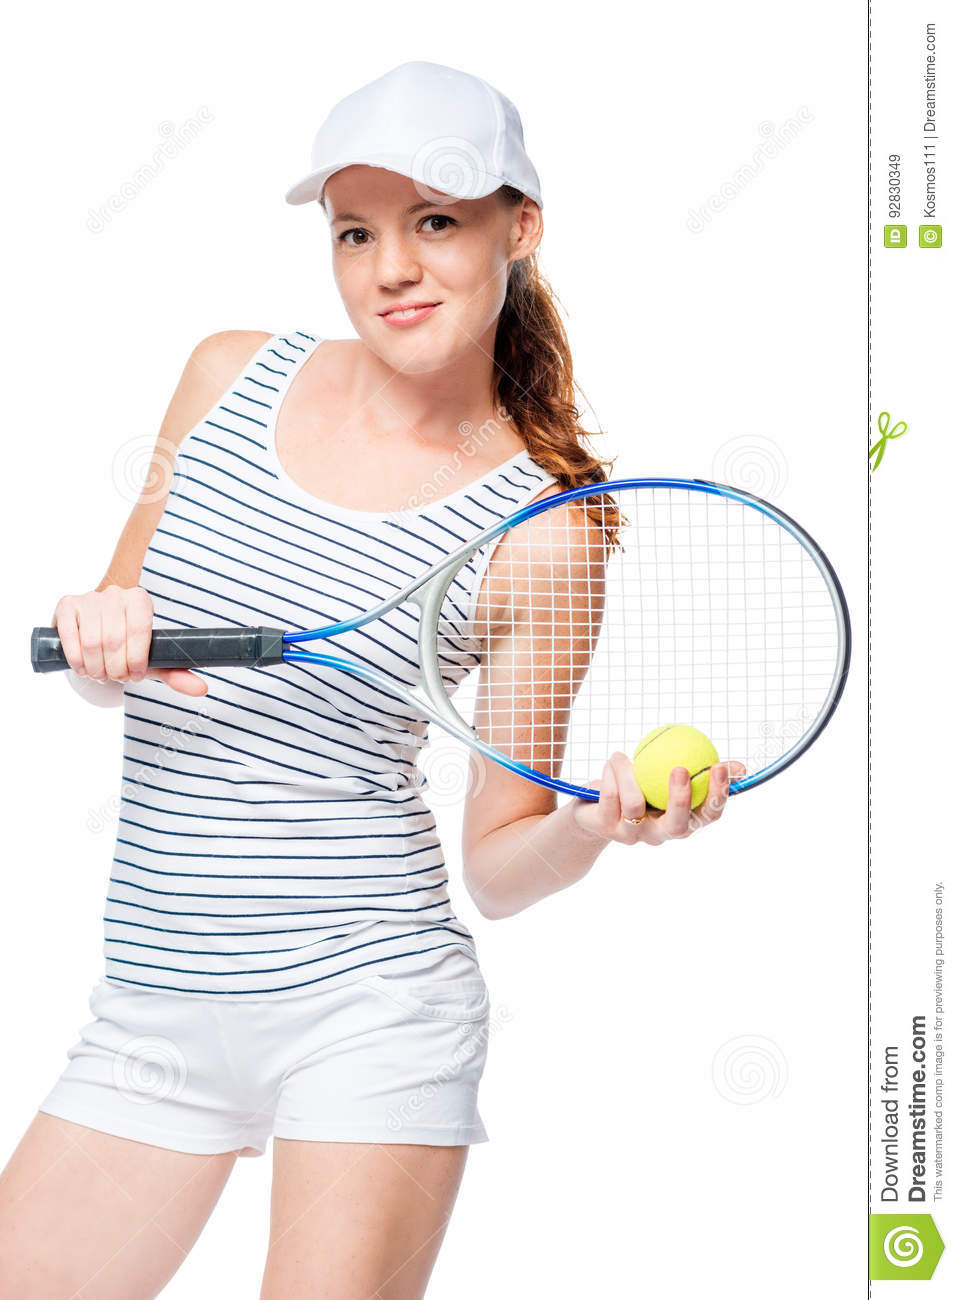 Vertical Portrait Of A Slender Tennis Player In A Cap Stock Image ... 39186d1ddb